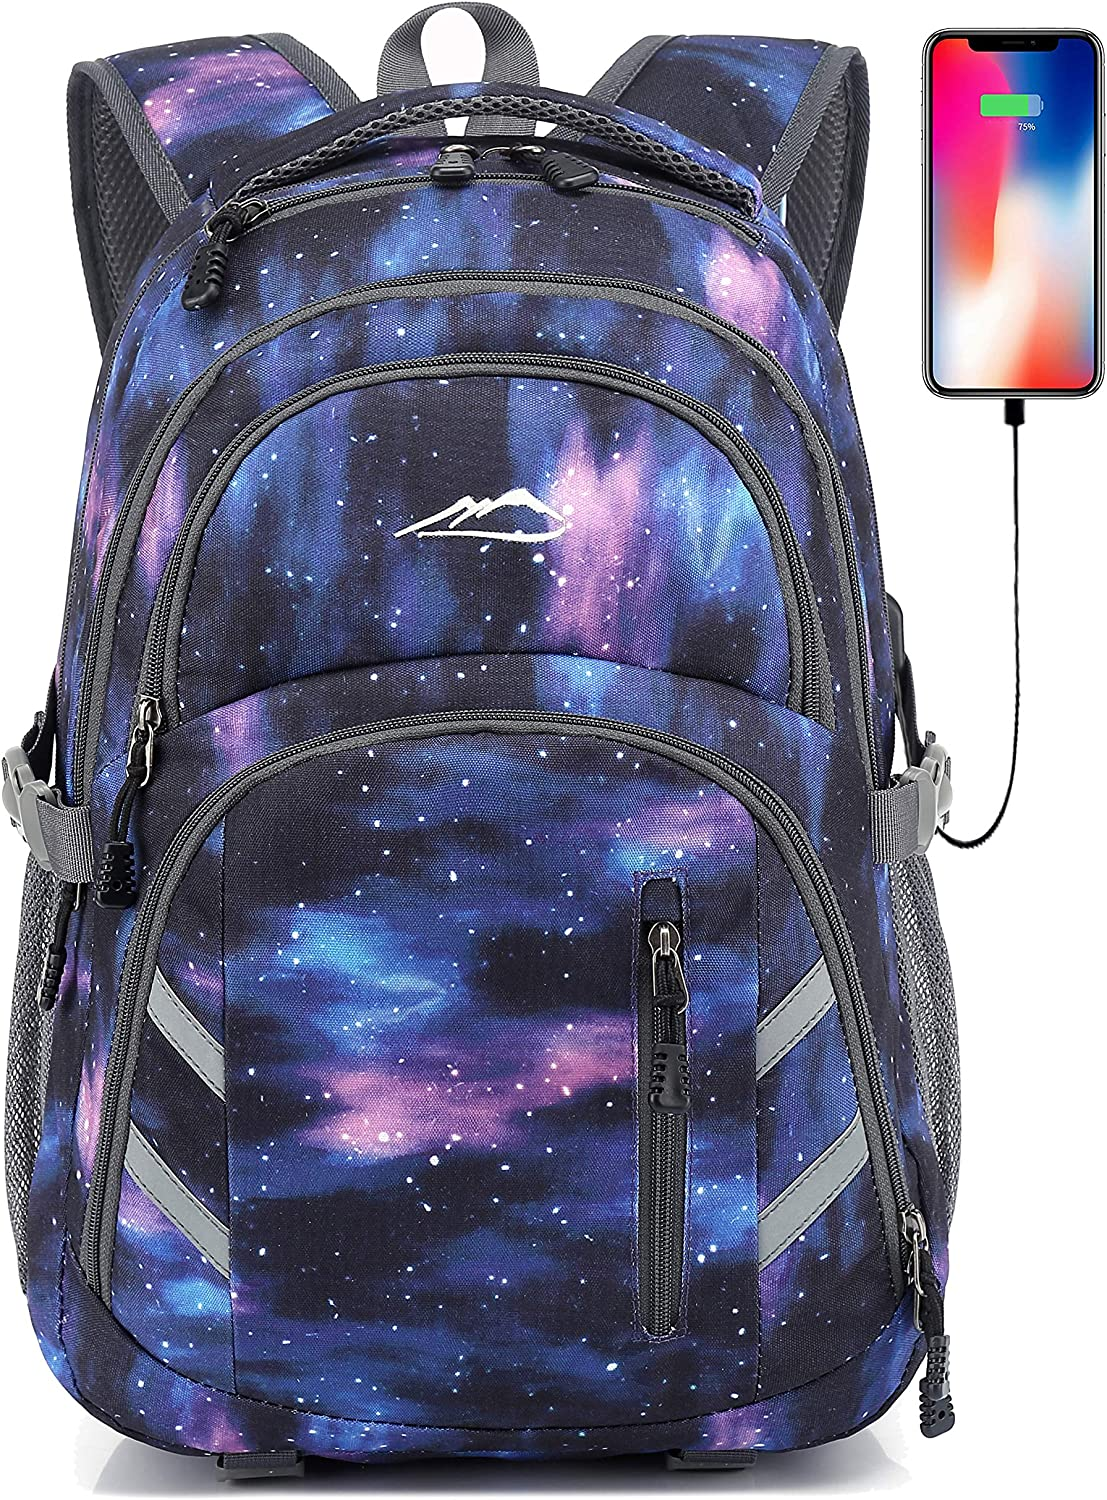 Backpack Bookbag for School College Student Laptop Travel with USB Charging Port